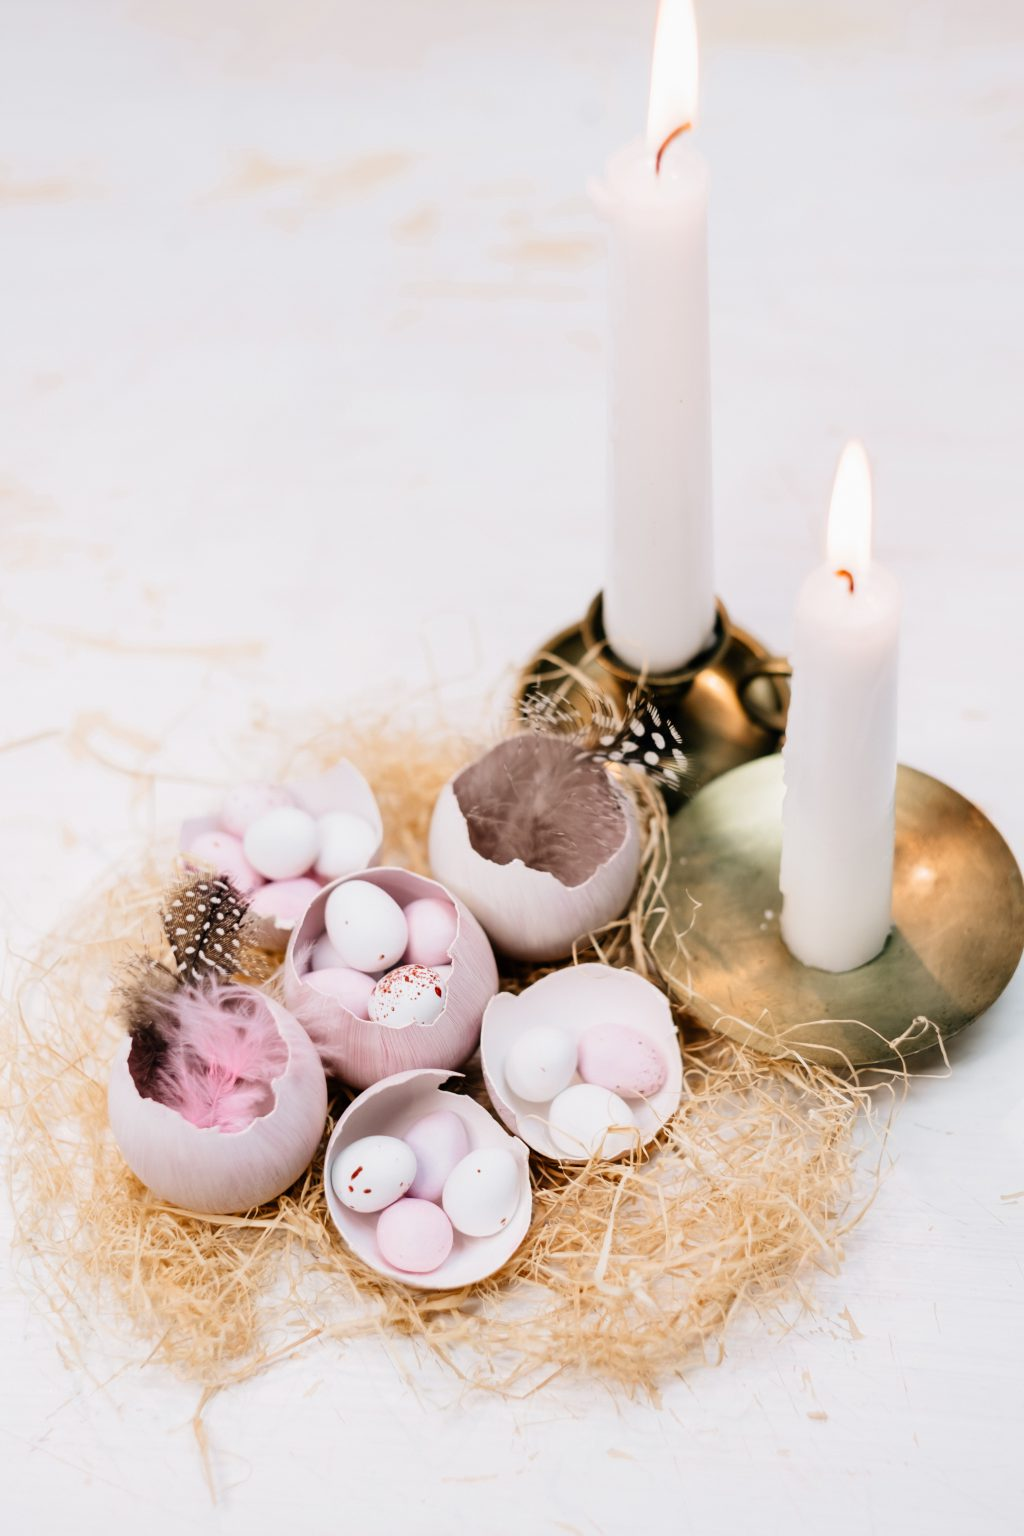 Egg shells Easter table decoration with candles - free stock photo